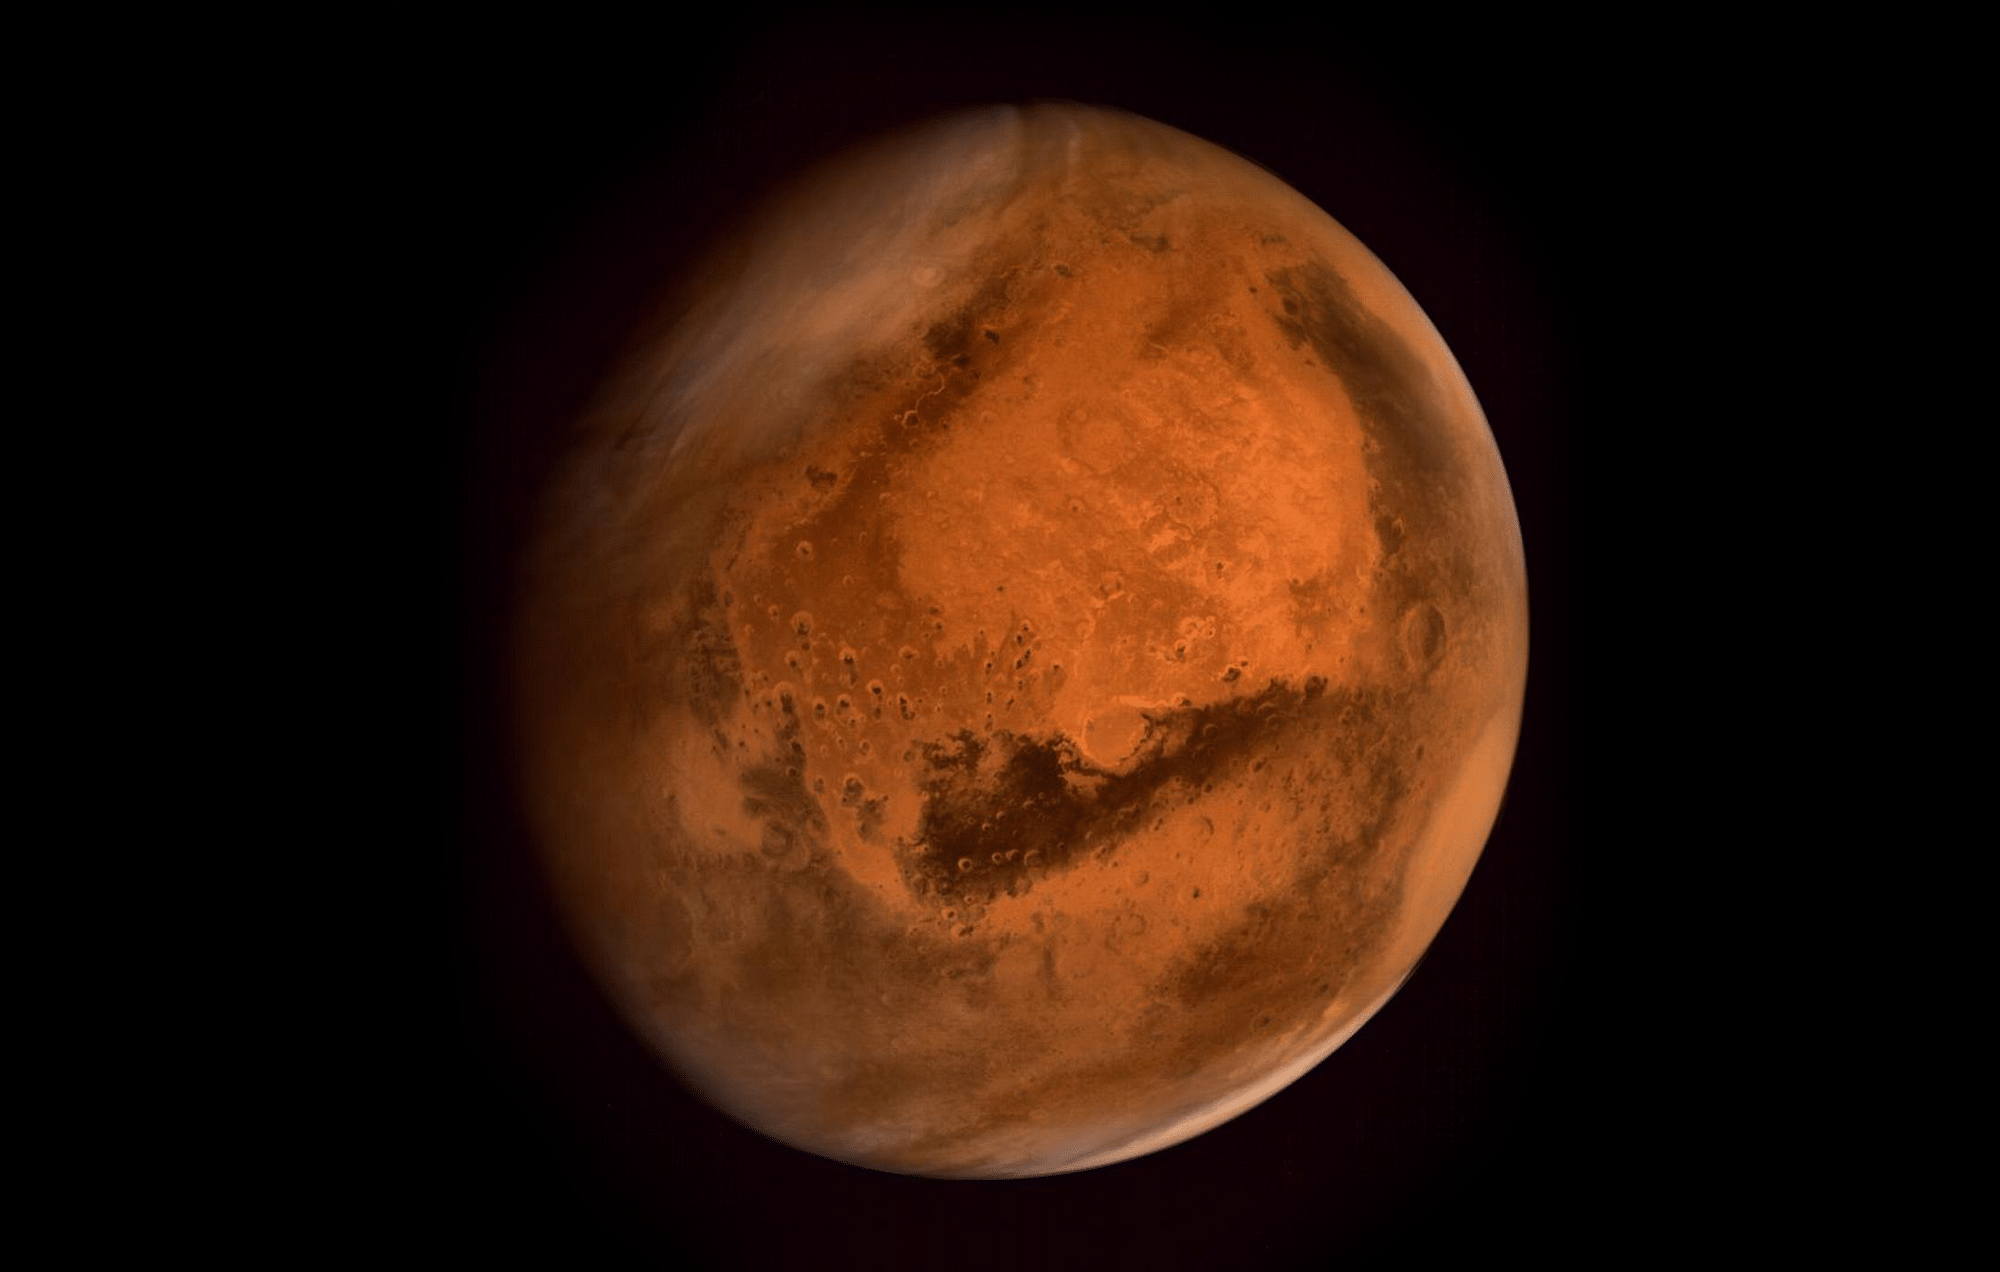 Mars as photographed by India's Mars Orbiter Mission. ISRO 2015